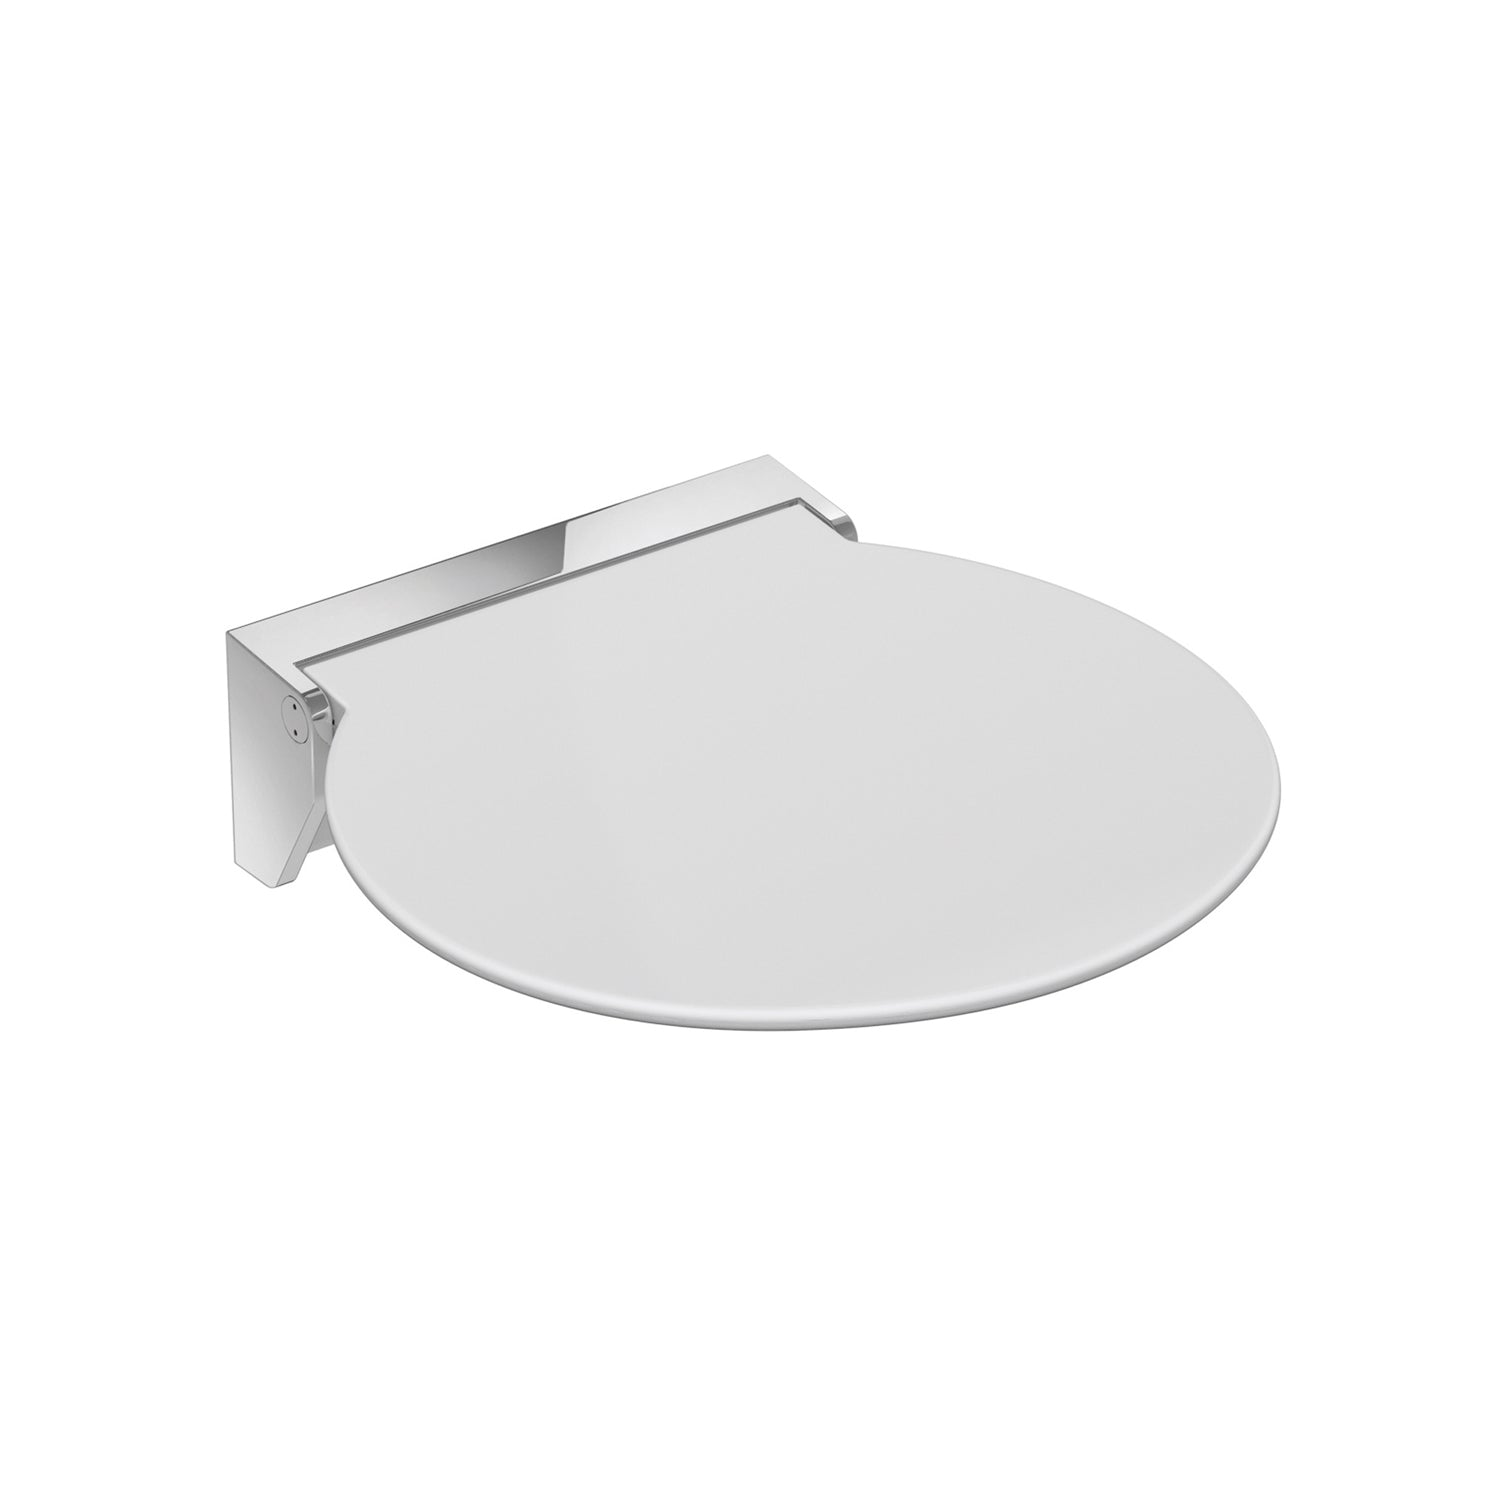 Circula Shower Seat with a white seat and chrome bracket on a white background